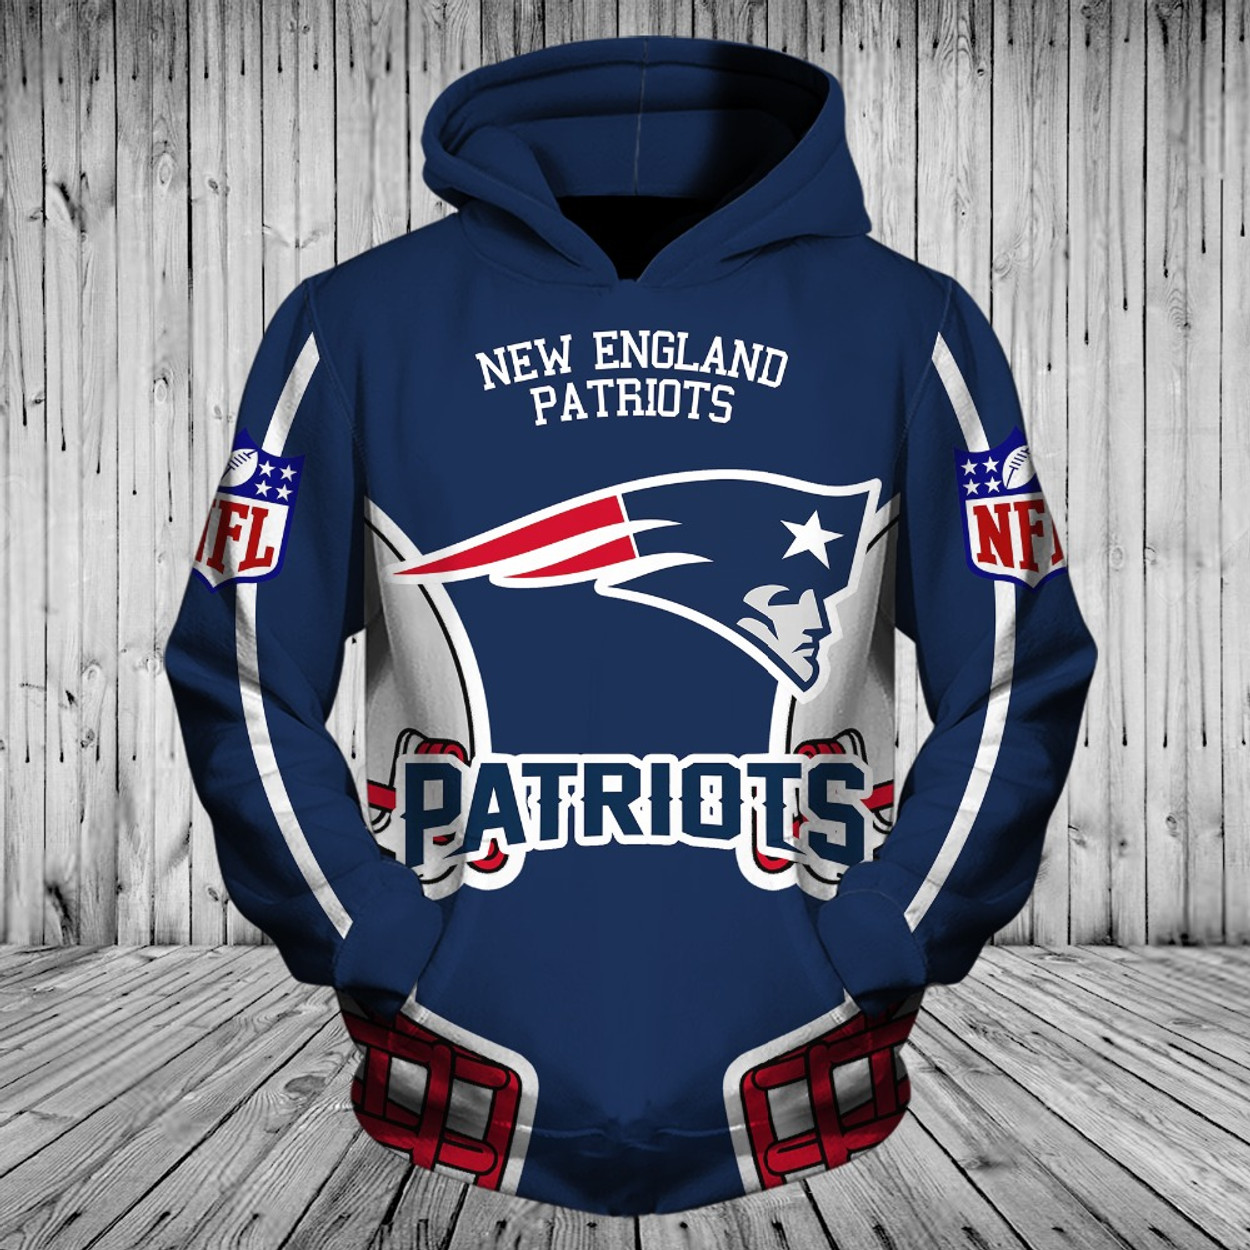 (OFFICIALLY-LICENSED-N.F.L.NEW-ENGLAND-PATRIOTS-POCKET-PULLOVER -HOODIES GRAPHIC-3D-PRINTED-IN-PATRIOTS-TEAM-COLORS  ... d31bcb792